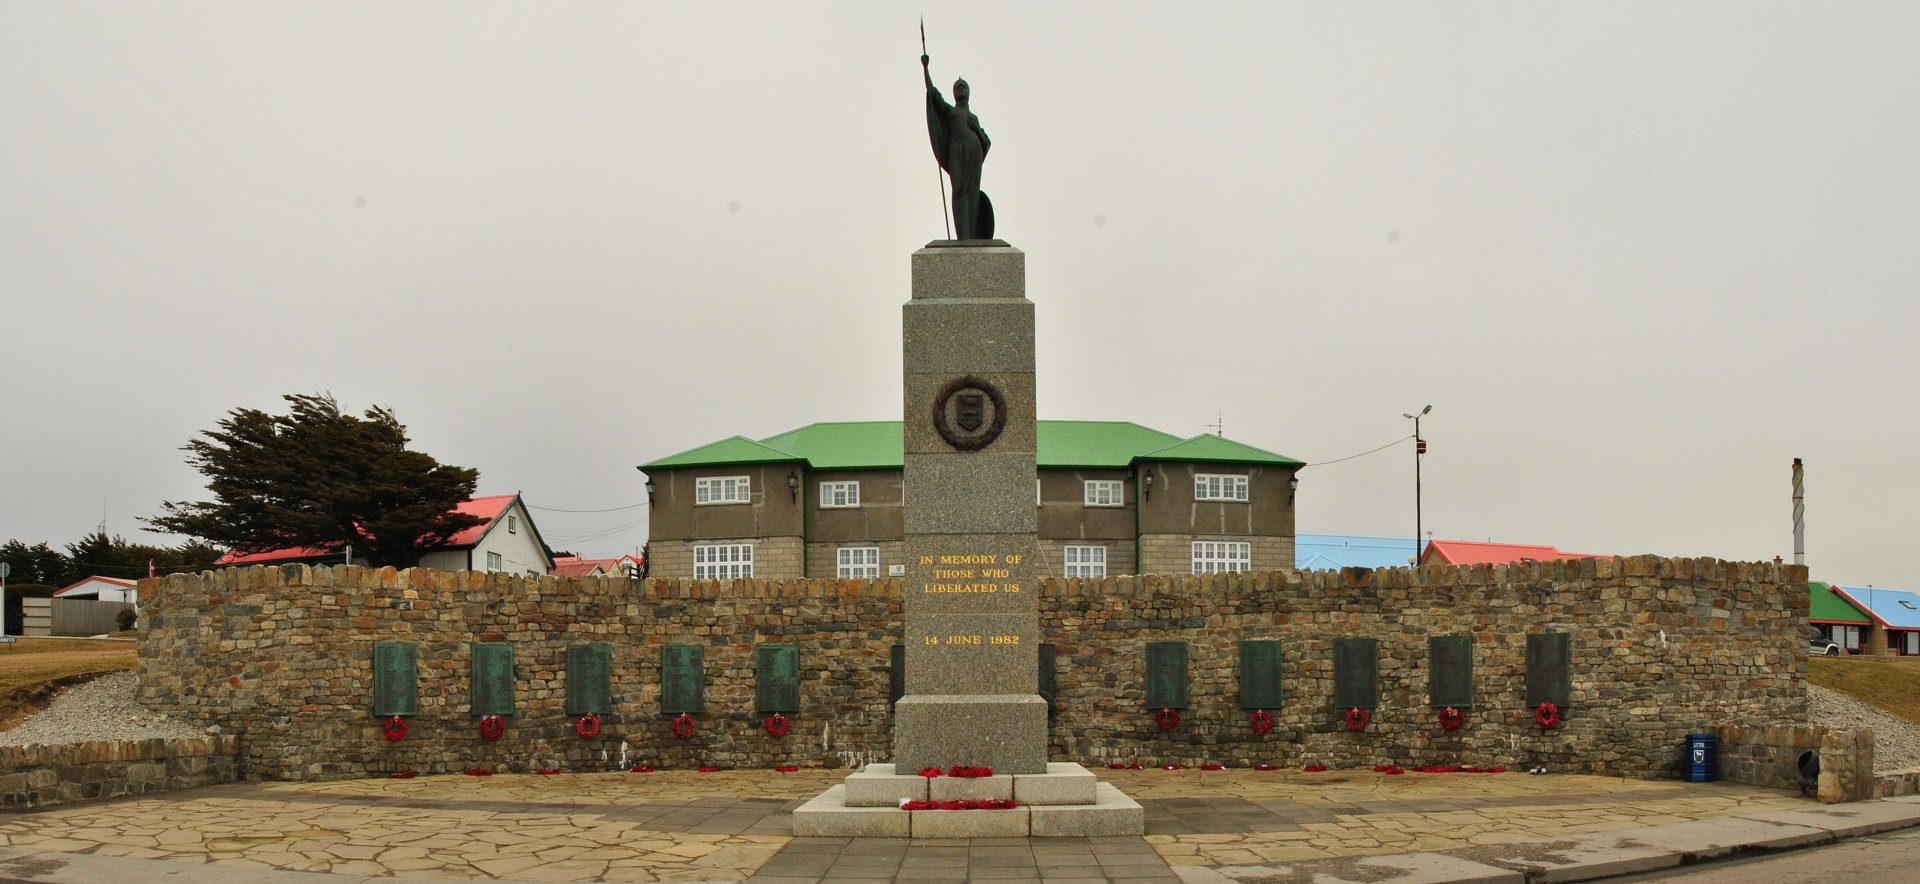 The Falklands War Memorial in Stanley Falkland Islands